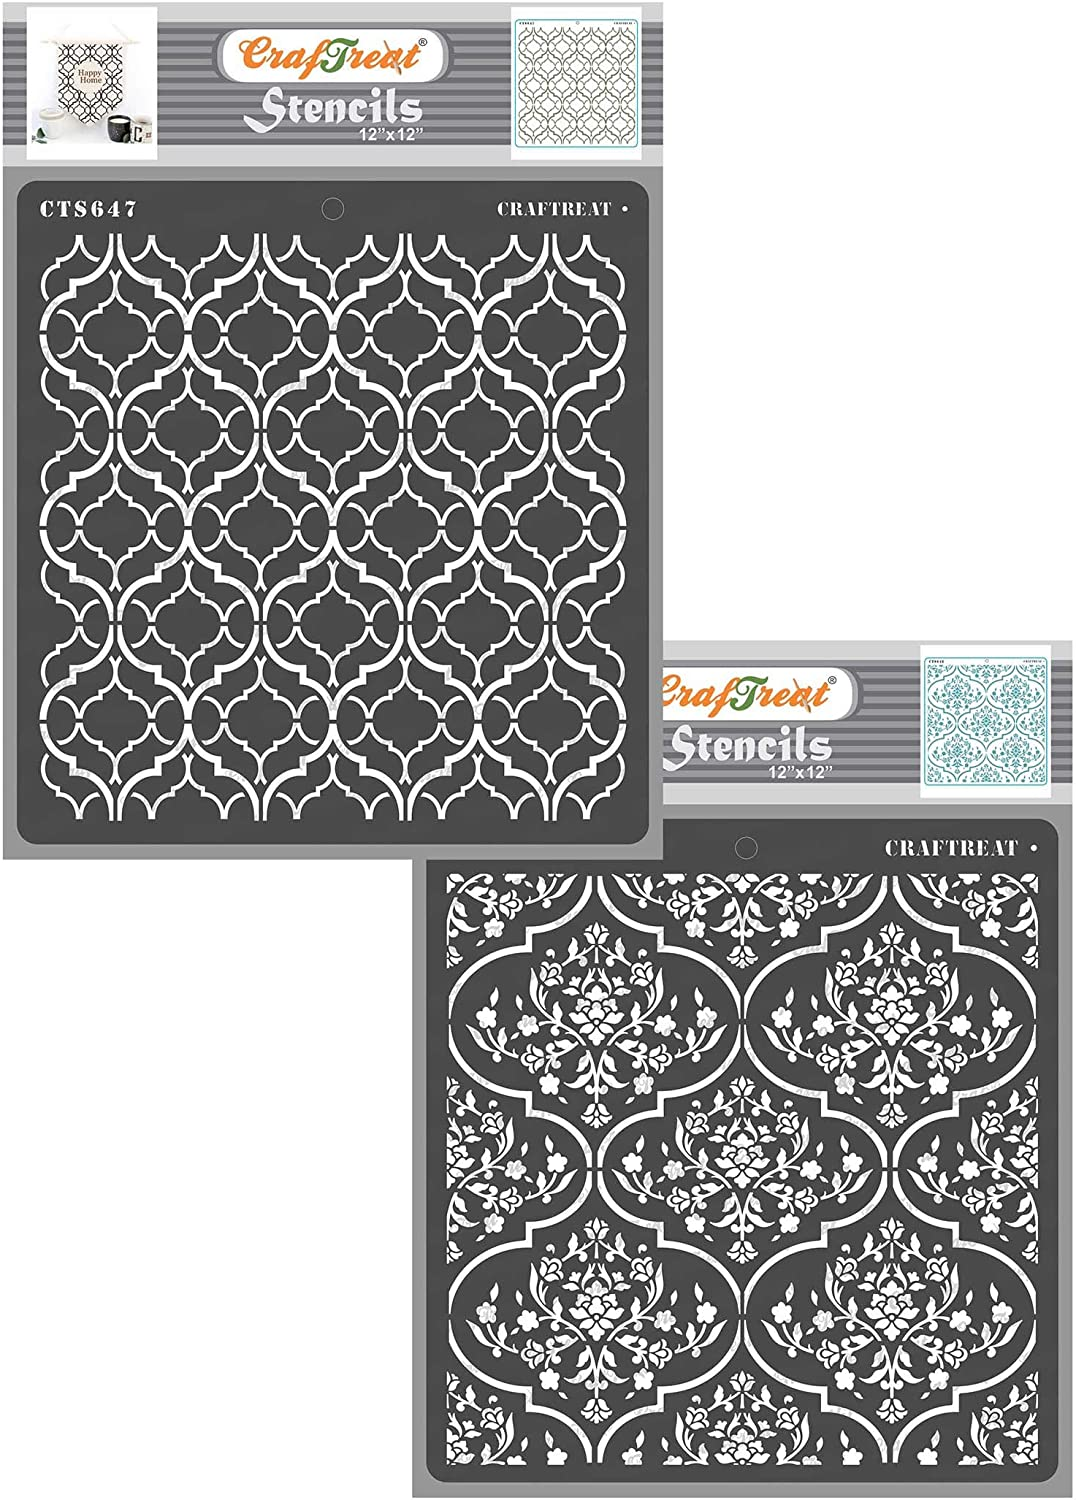 CrafTreat Trellis Stencils for Painting on Wood - Trellis in Trellis and Floral Trellis - 12X12 Inches - 2 Pcs - Moroccan Trellis Stencil for Furniture Painting - Background Stencils for Scrapbooking